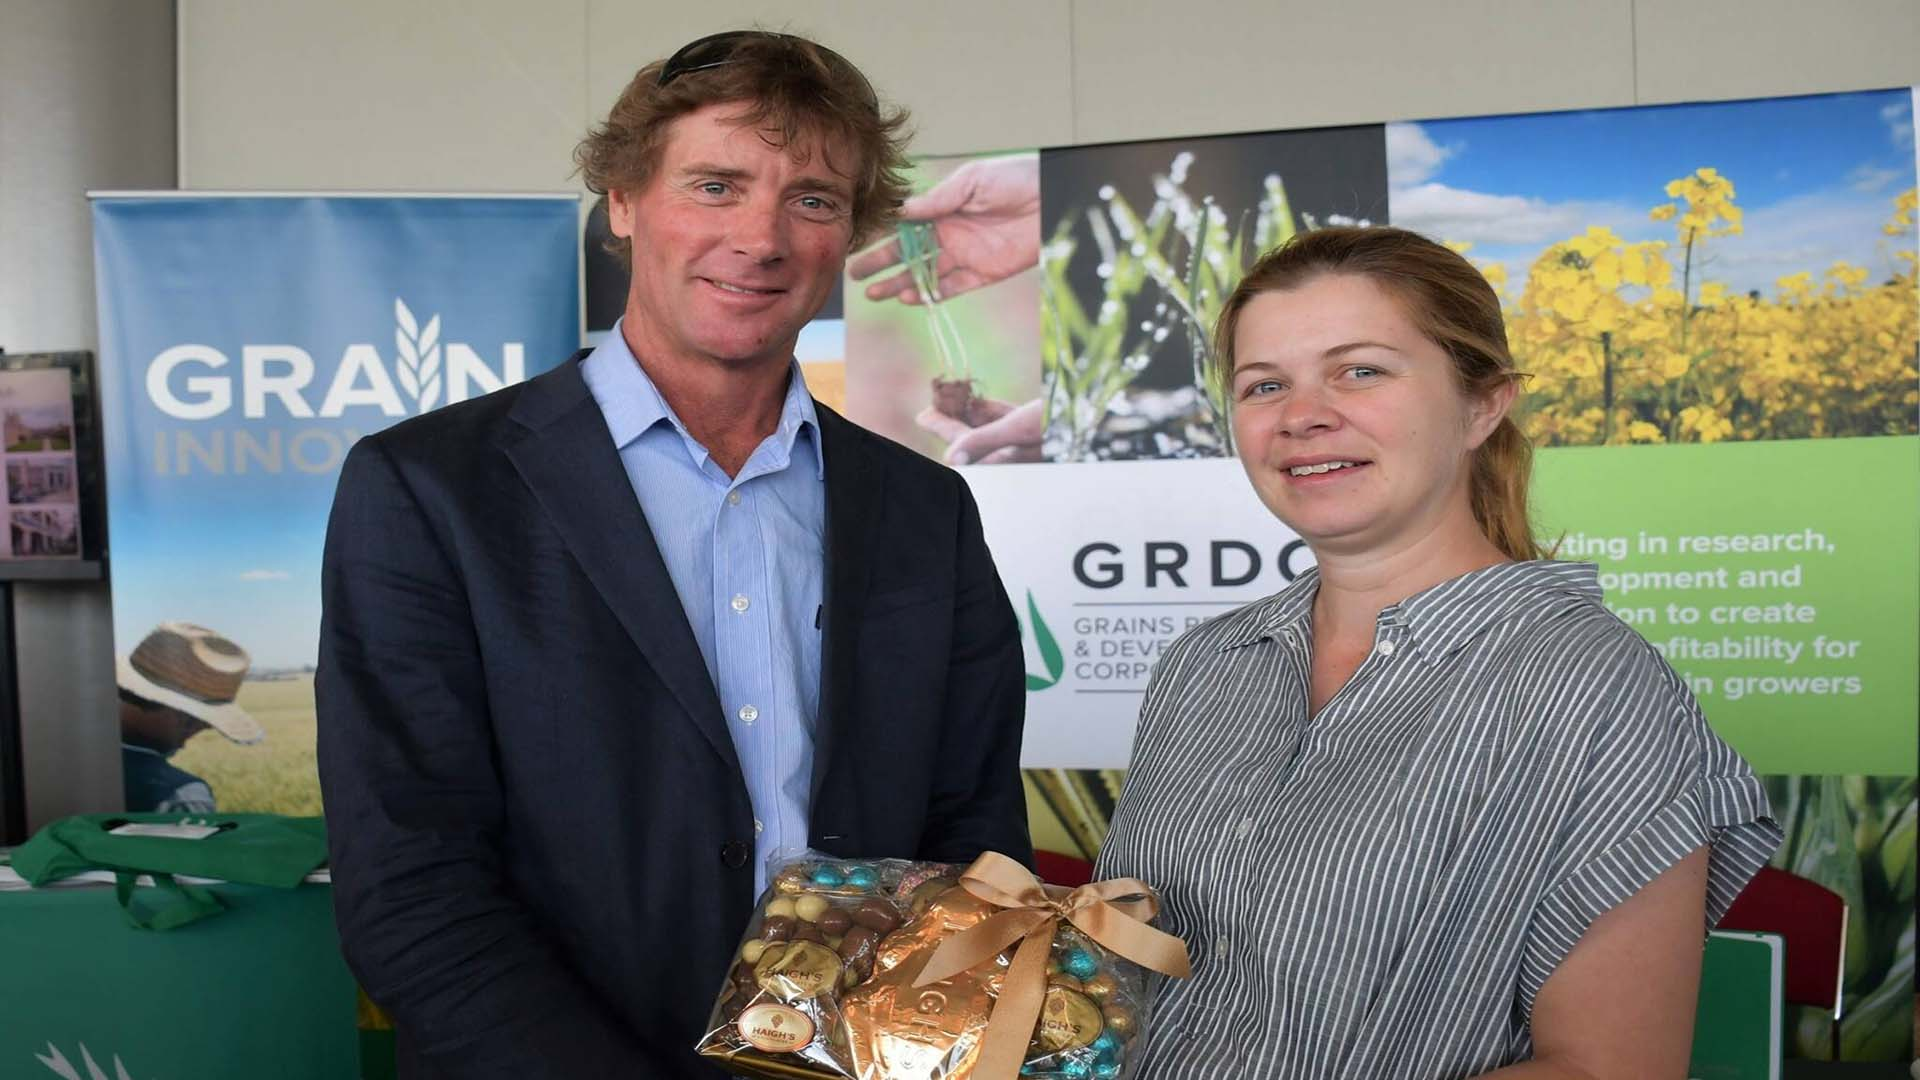 Soils researcher Dr Sarah Noack was recently presented with the GRDC Southern Region 2020 Emerging Leader Award by GRDC Southern Region Panel member Michael Chilvers, of Tasmania.